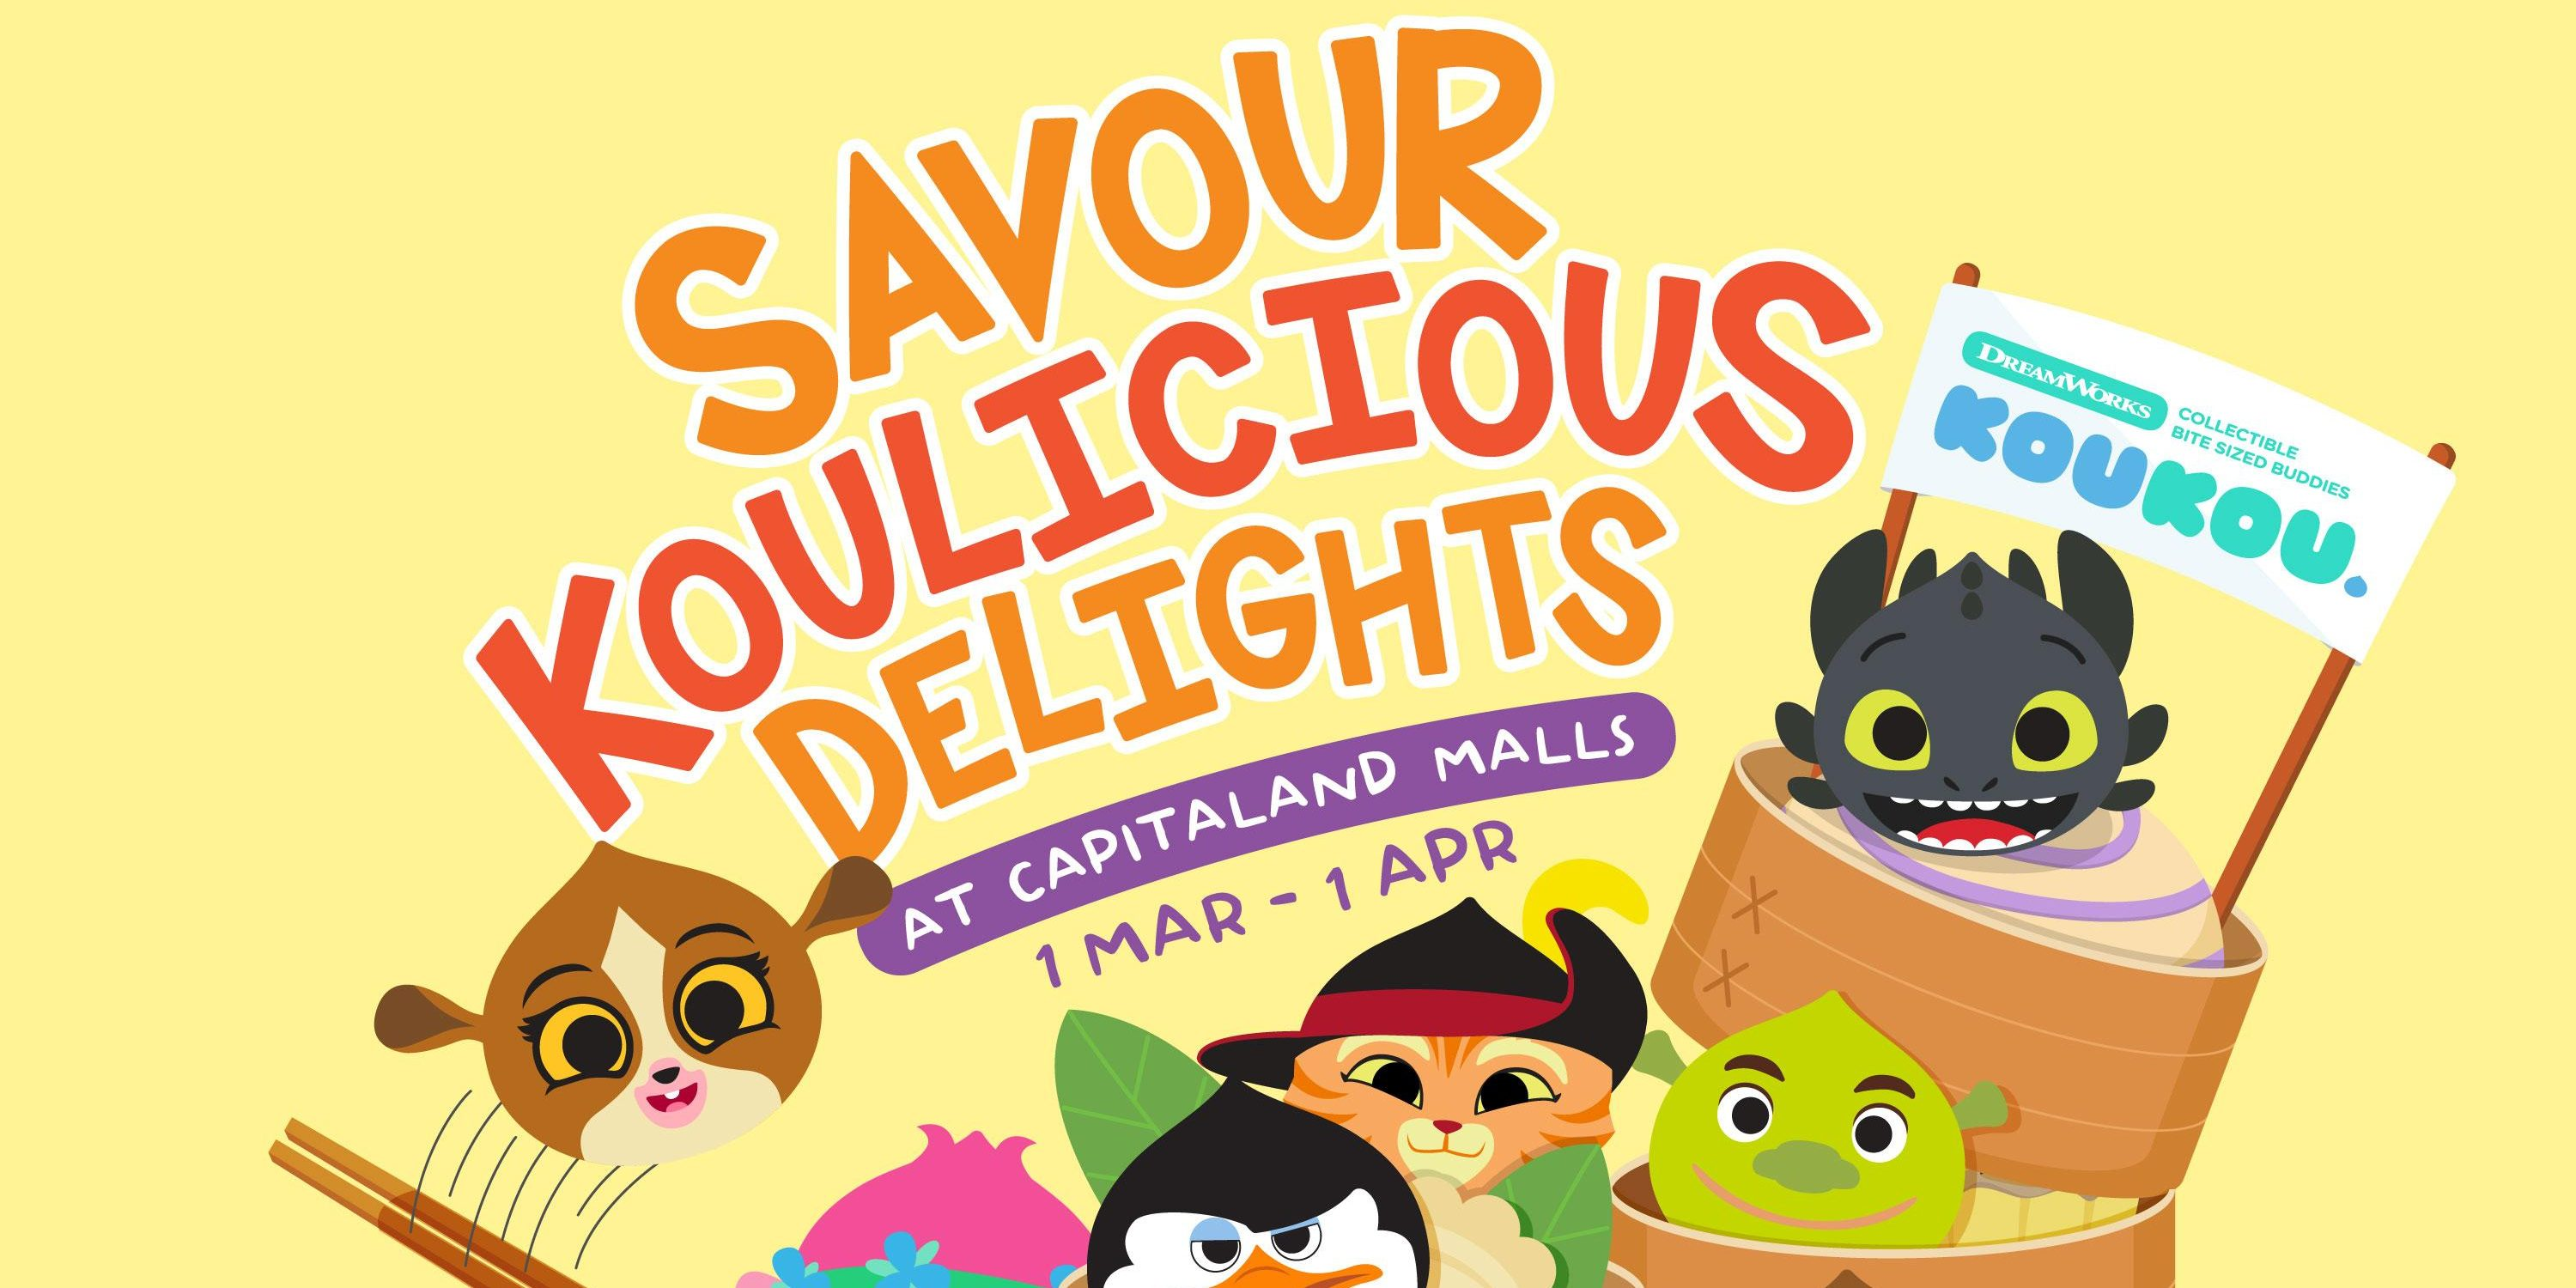 CapitaLand Malls Singapore Savour Koulicious Delights from 1 Mar – 1 Apr 2018